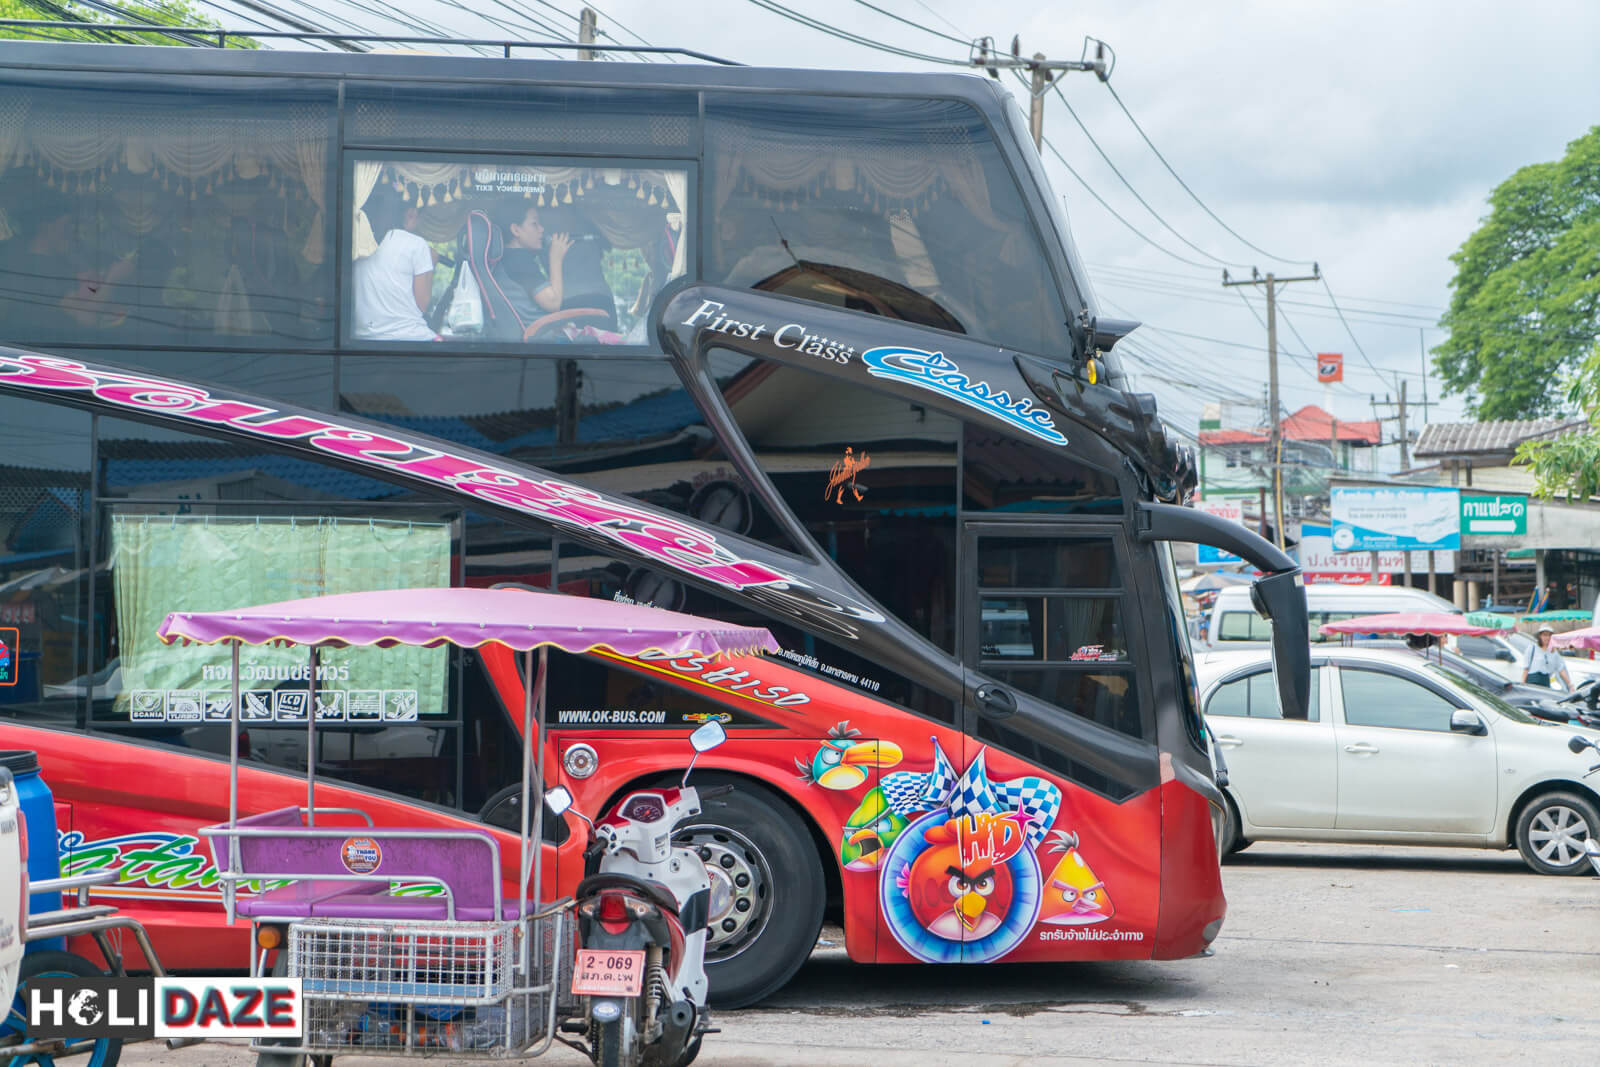 Buses in Thailand are like karaoke bars on wheels